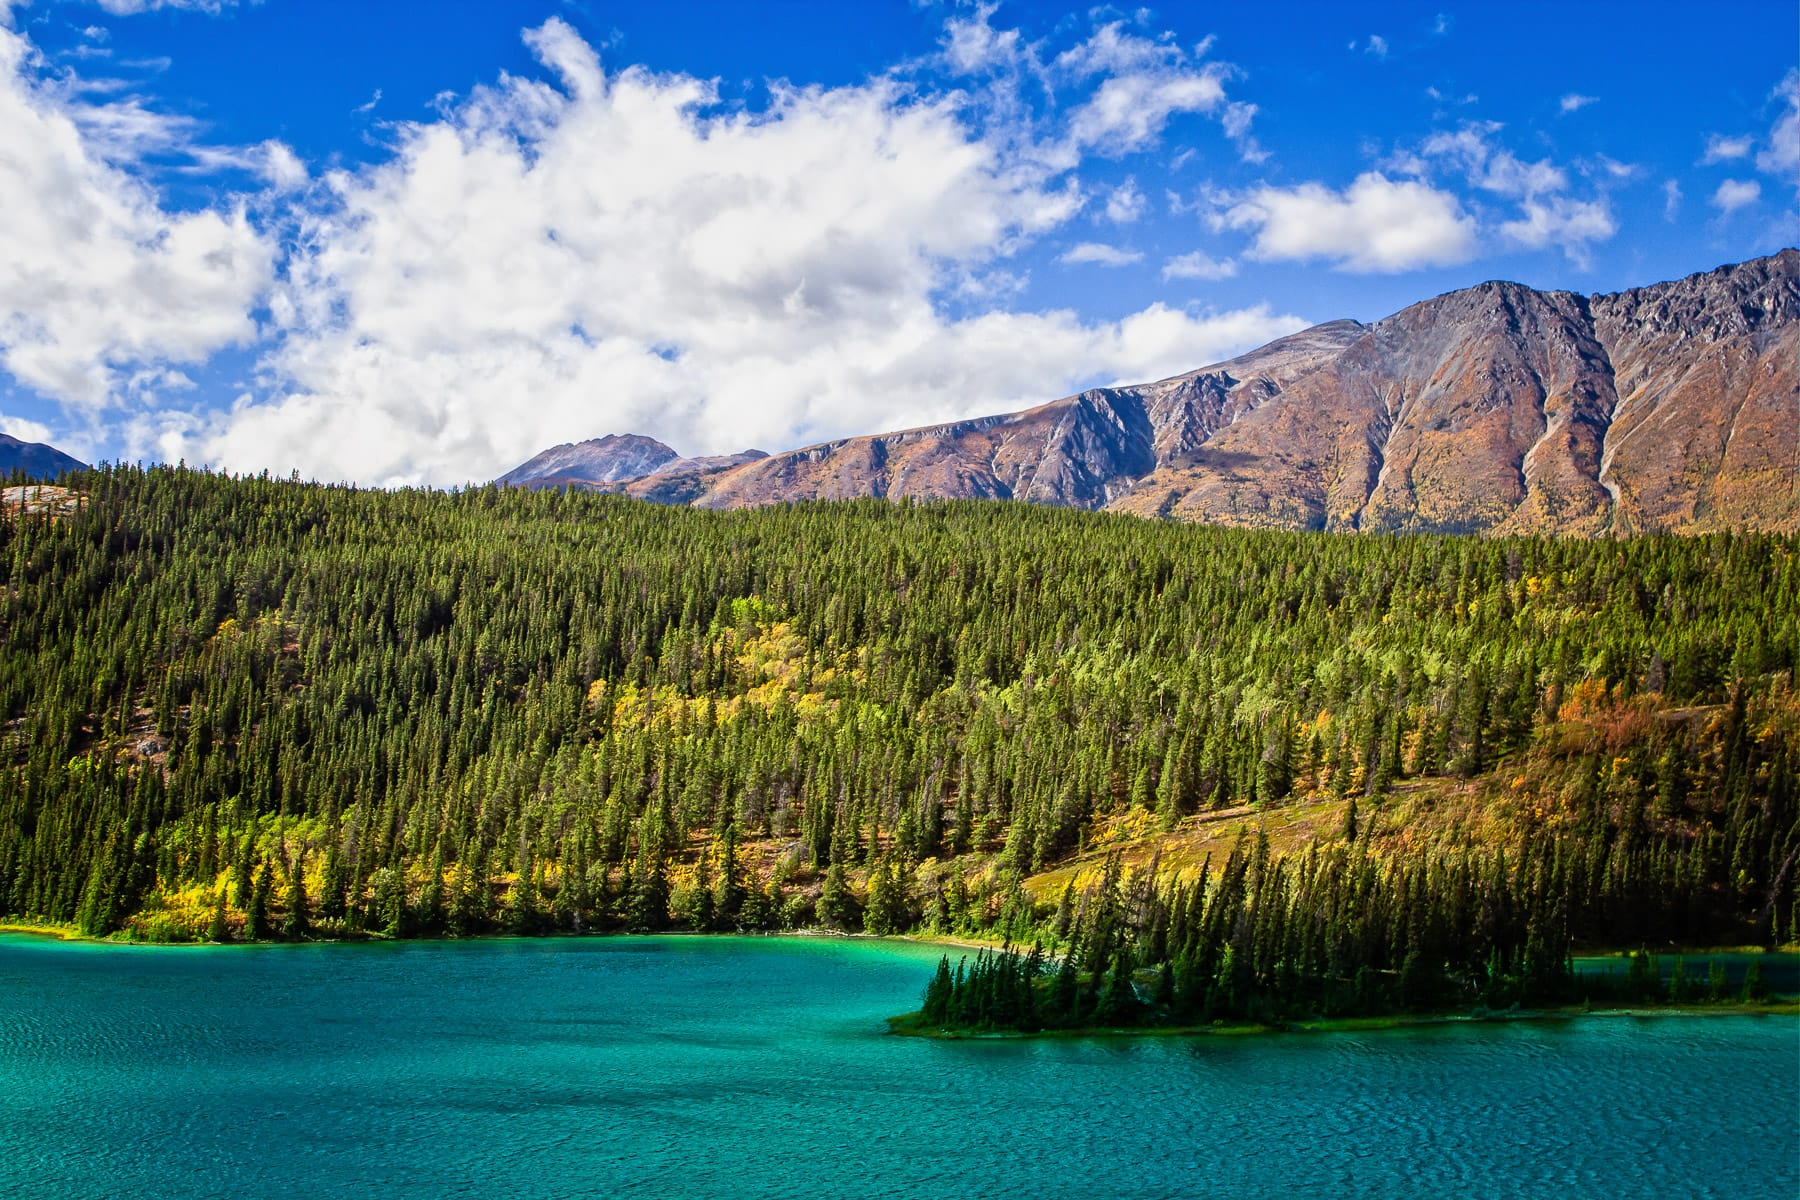 The deep blue-green waters of Emerald Lake, nestled in the mountains just north of Carcross, Yukon Territory, Canada.